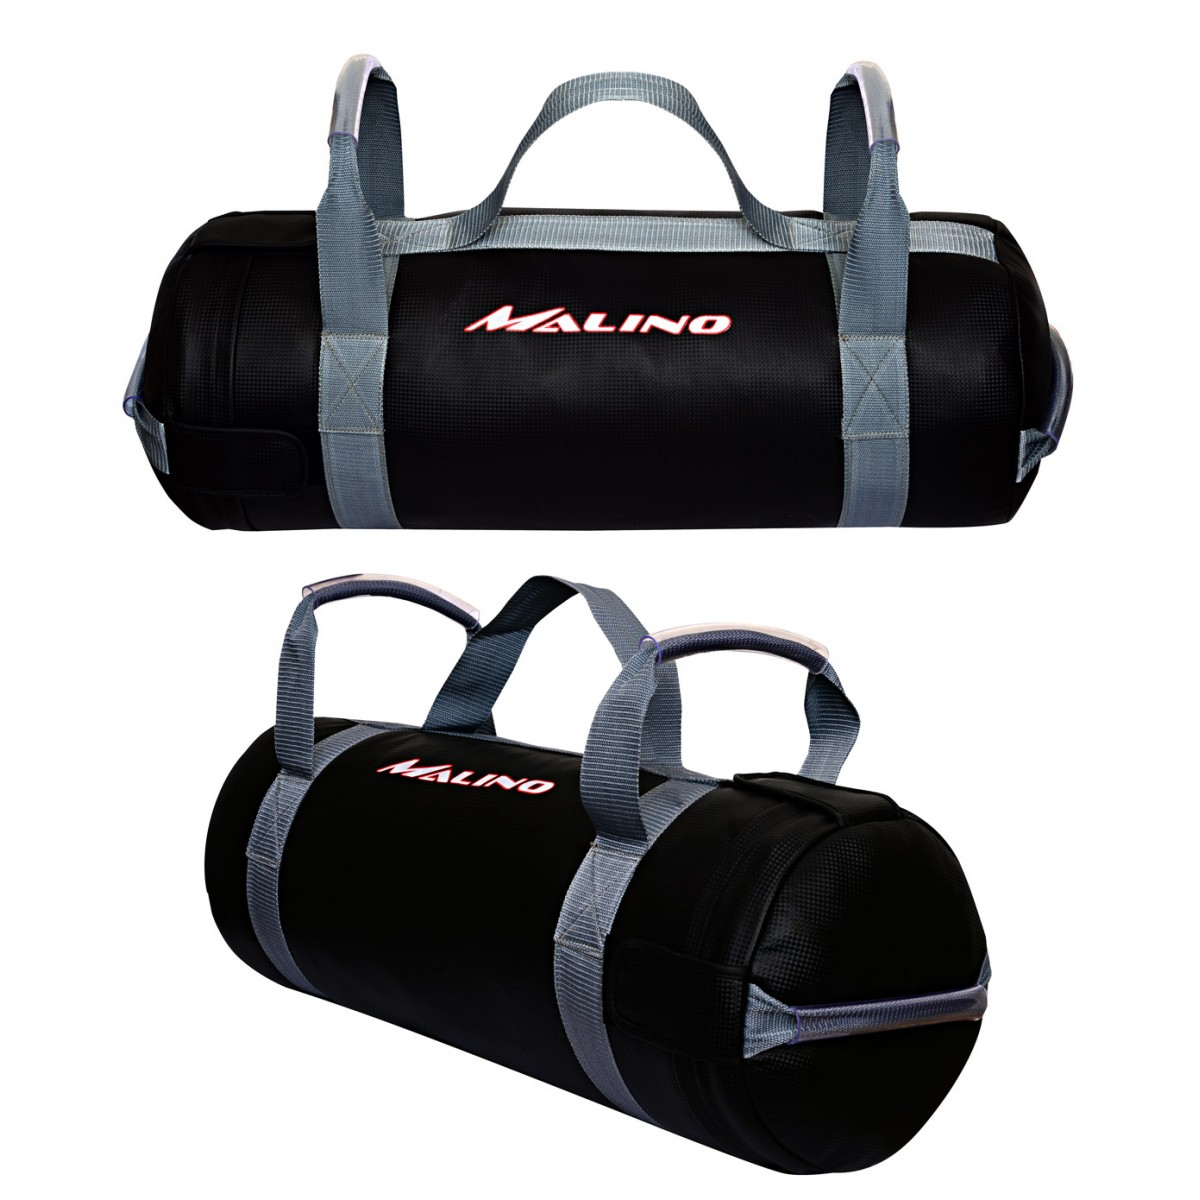 Malino Weight Lifting Bag -Sand Bag 10Kg Black-Grey